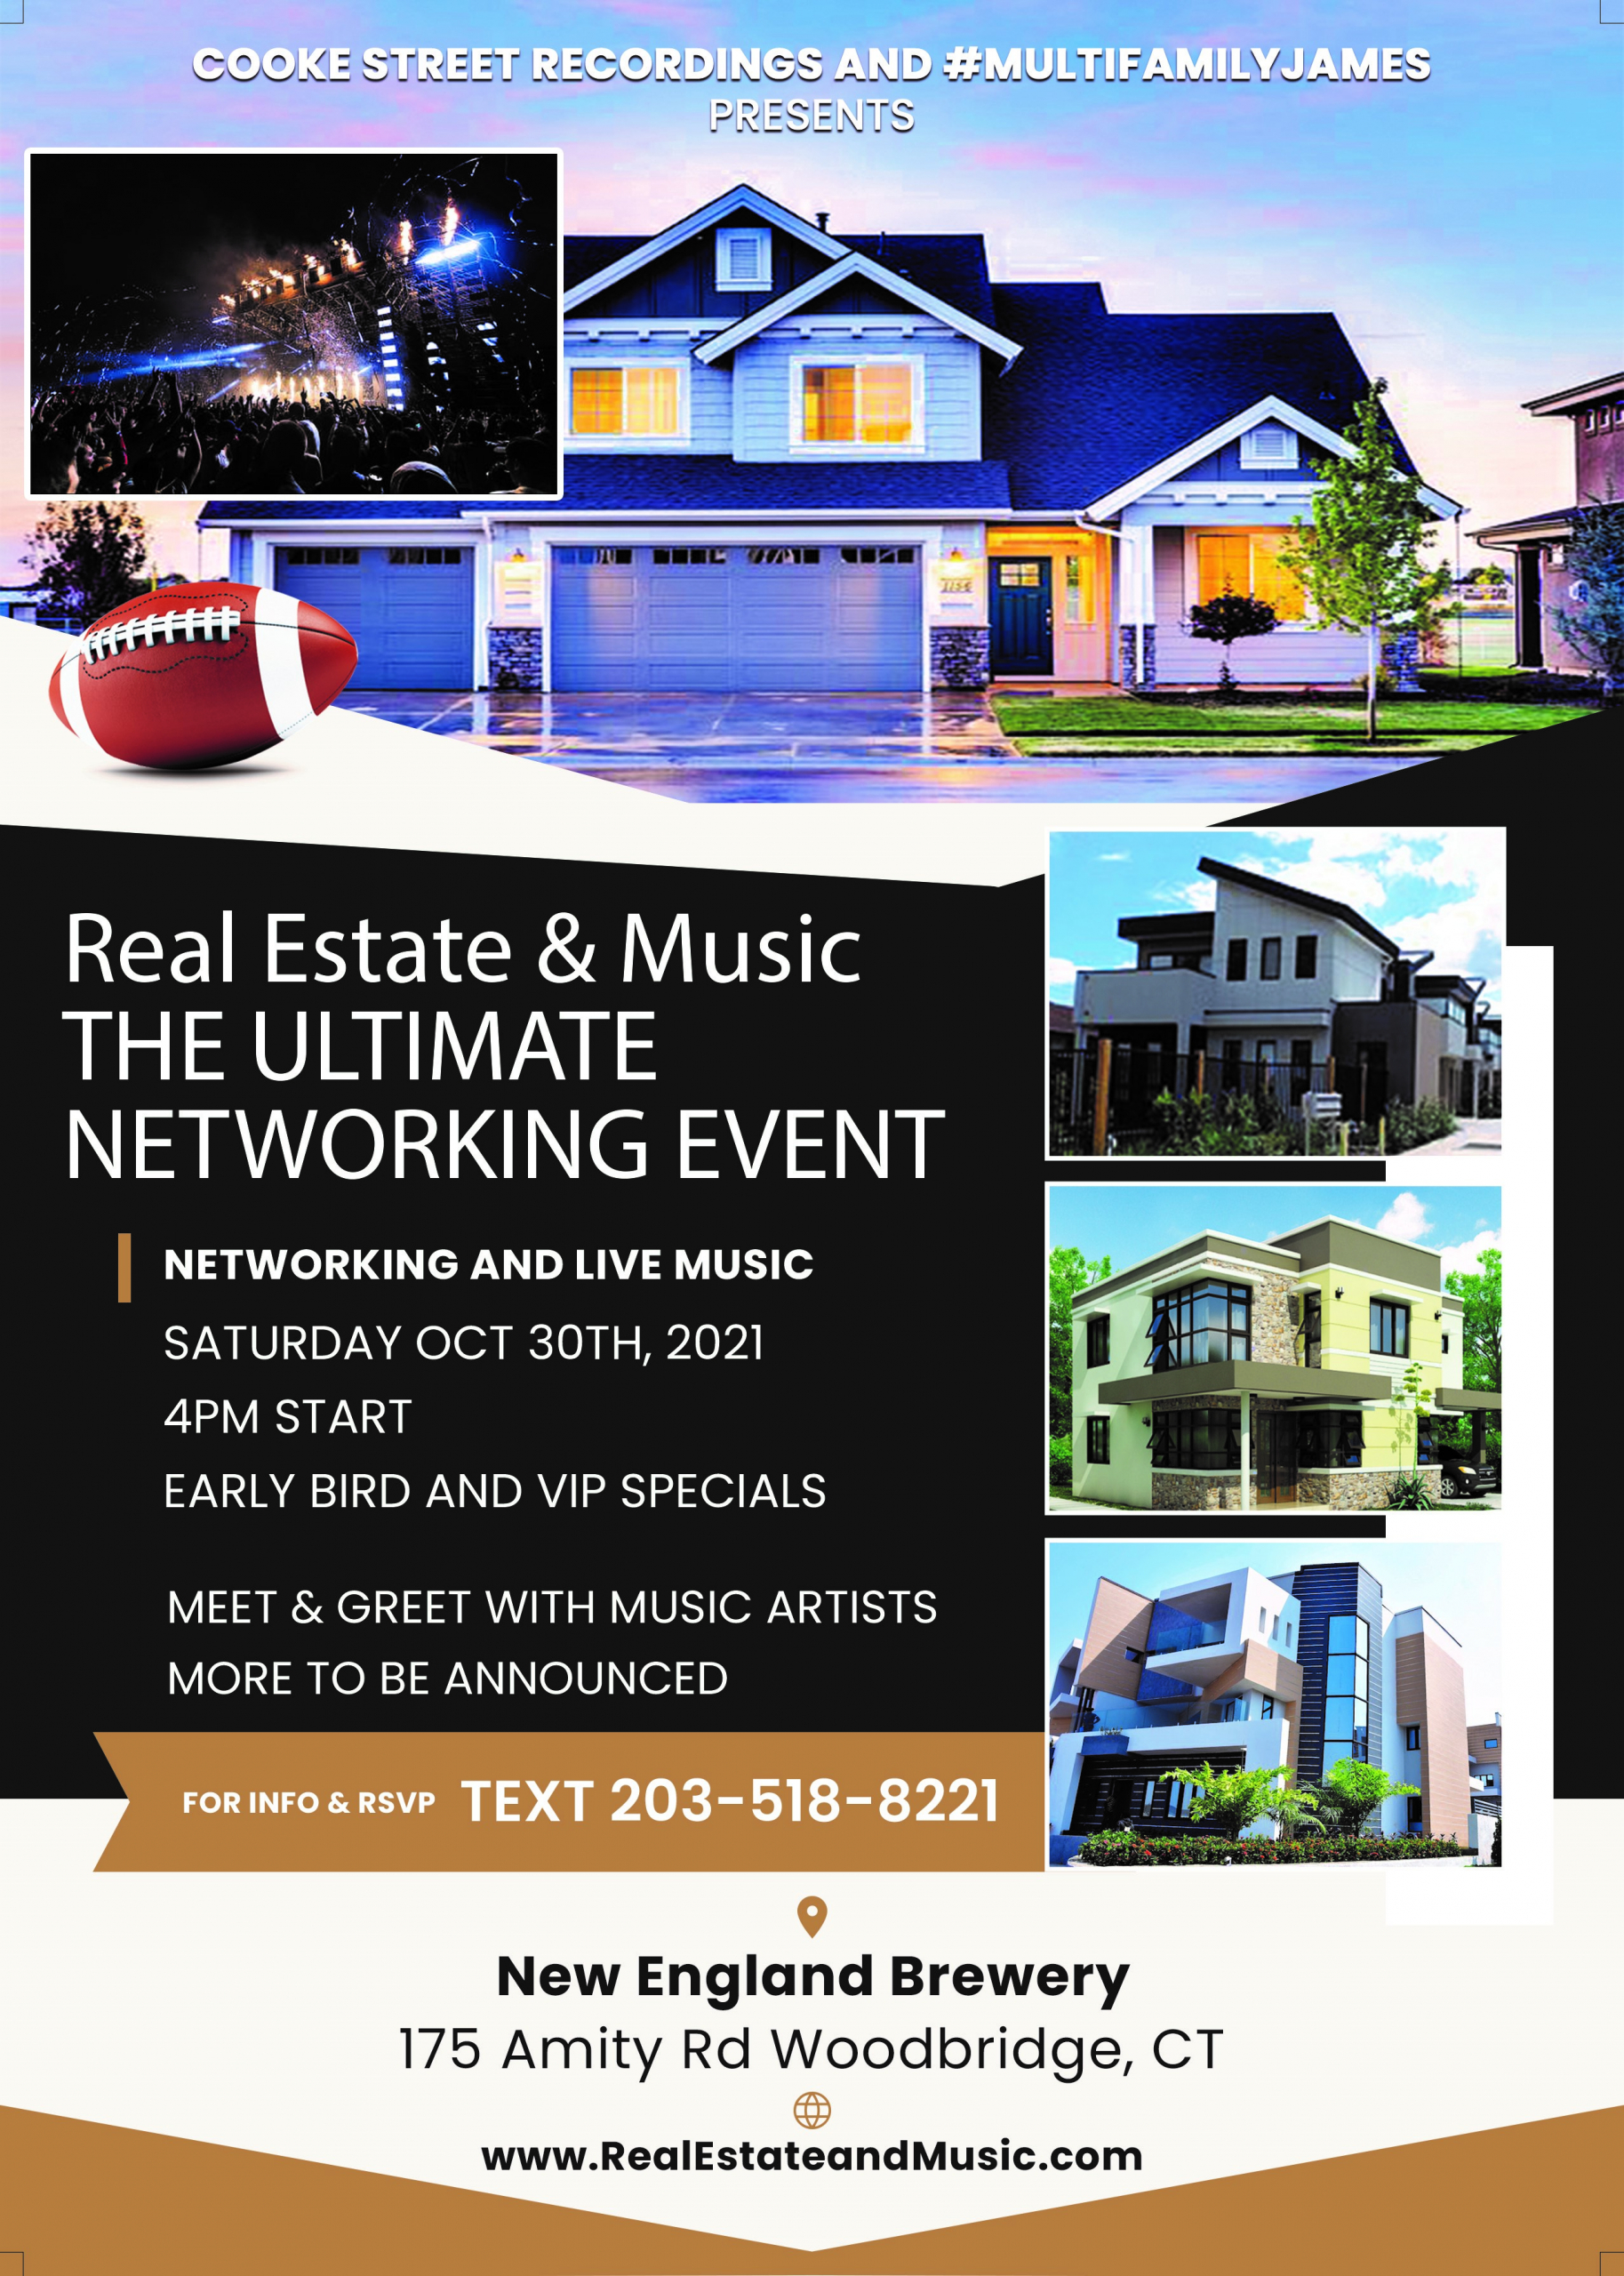 Real Estate & Music: Networking Tour